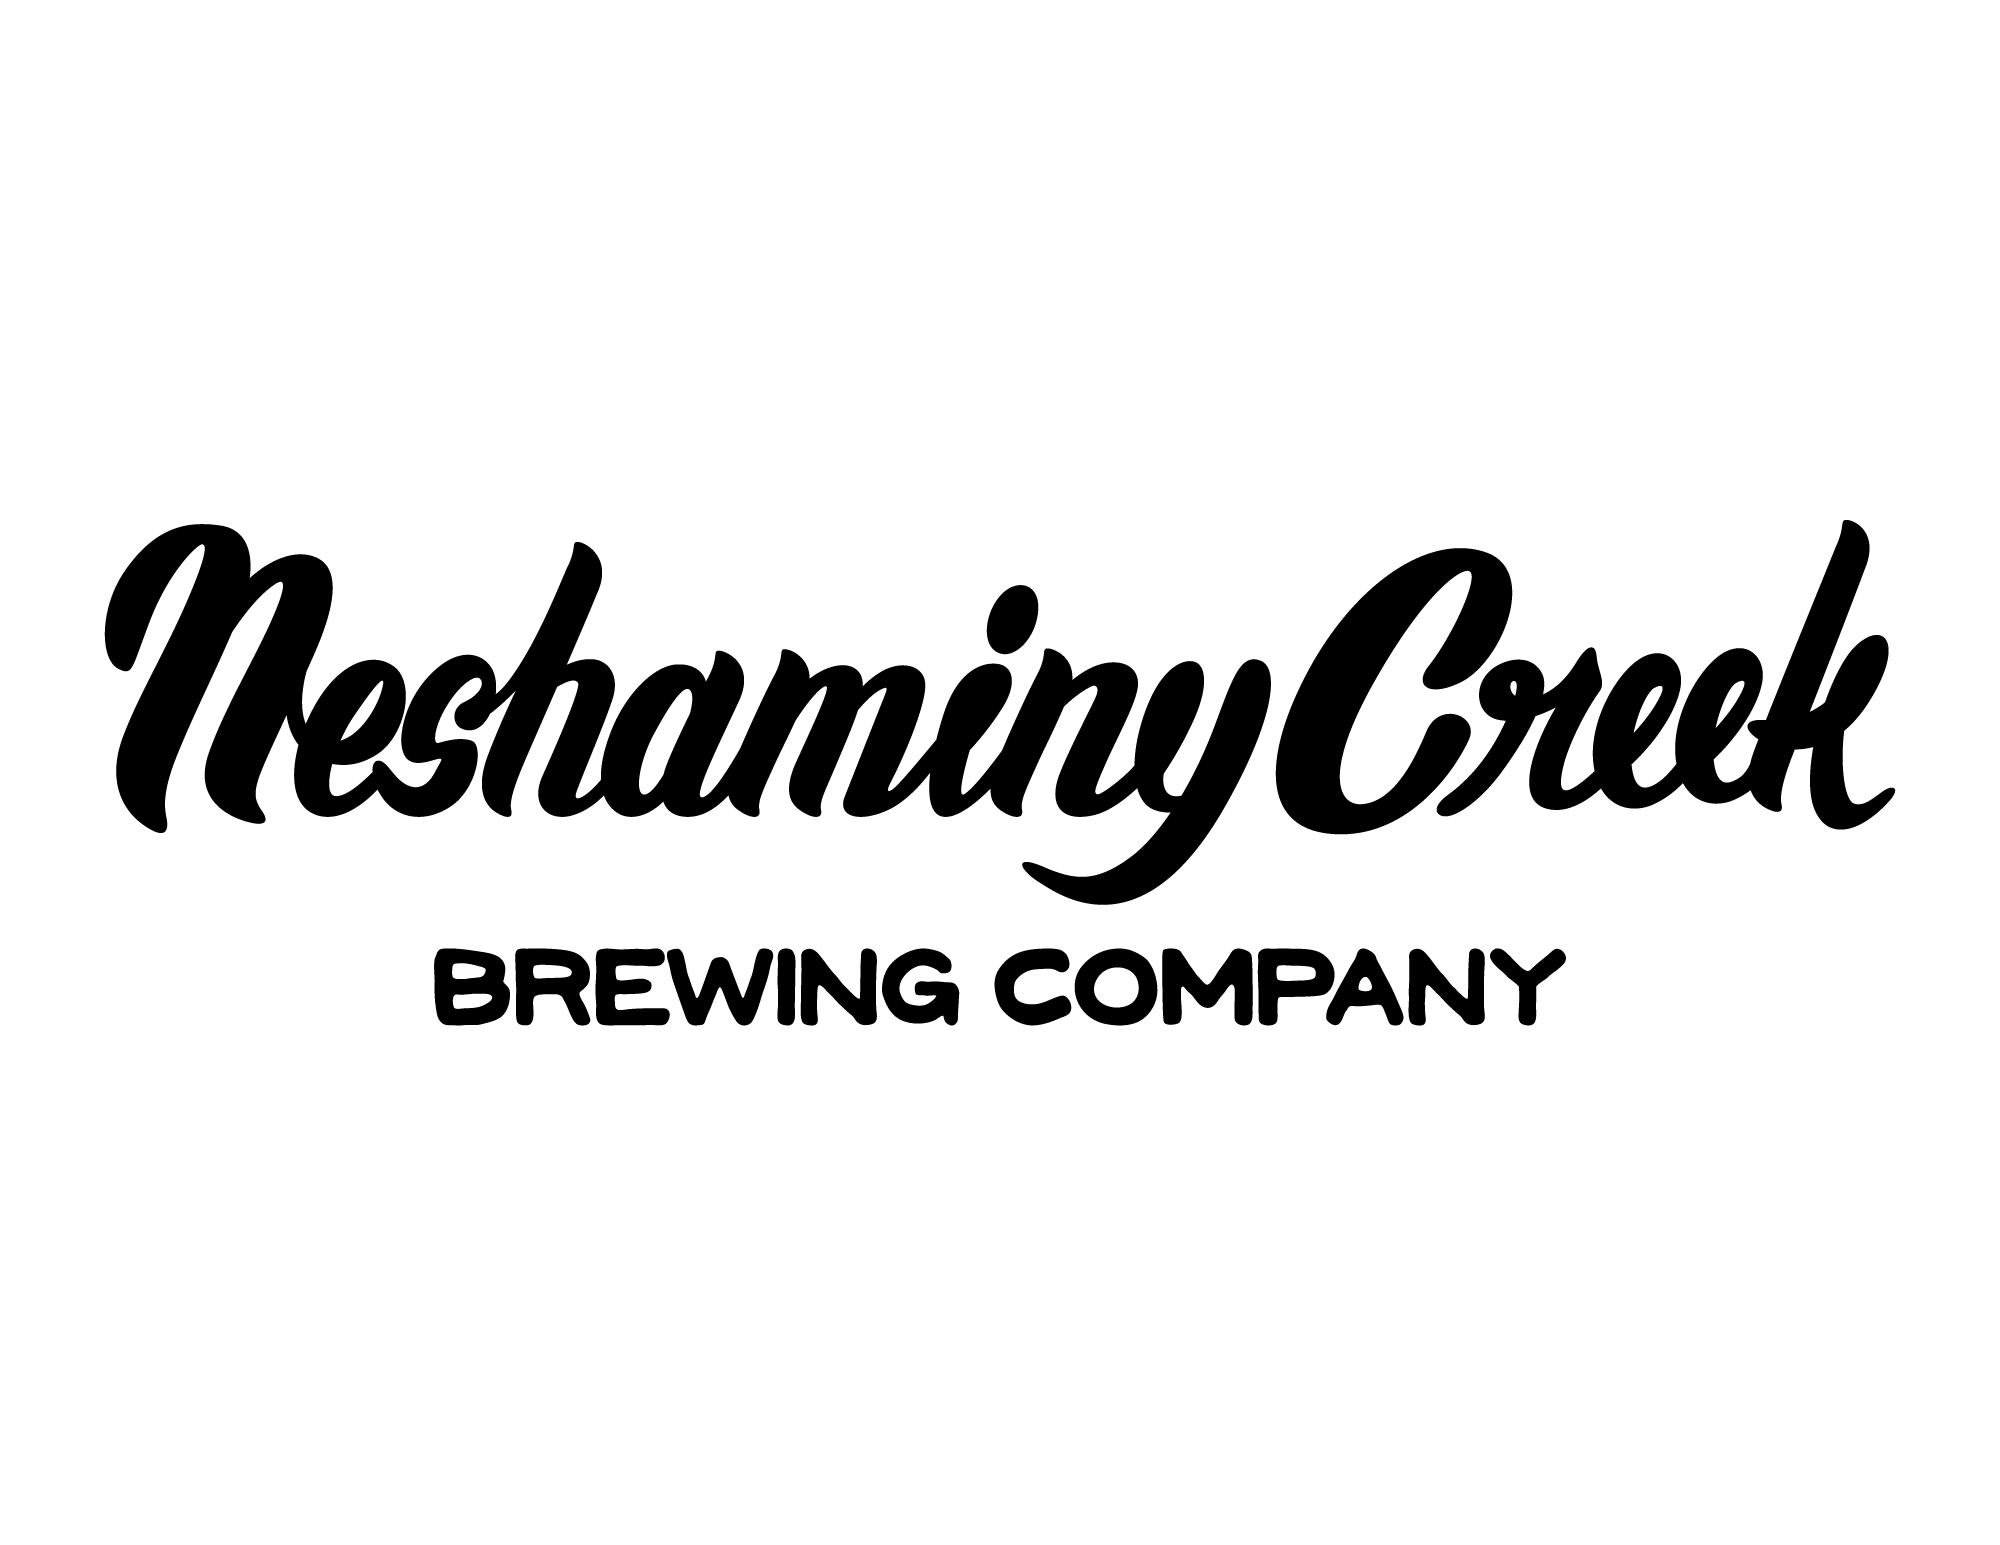 Neshaminy Creek Brewing Company — THE STUDIO OF JP FLEXNER